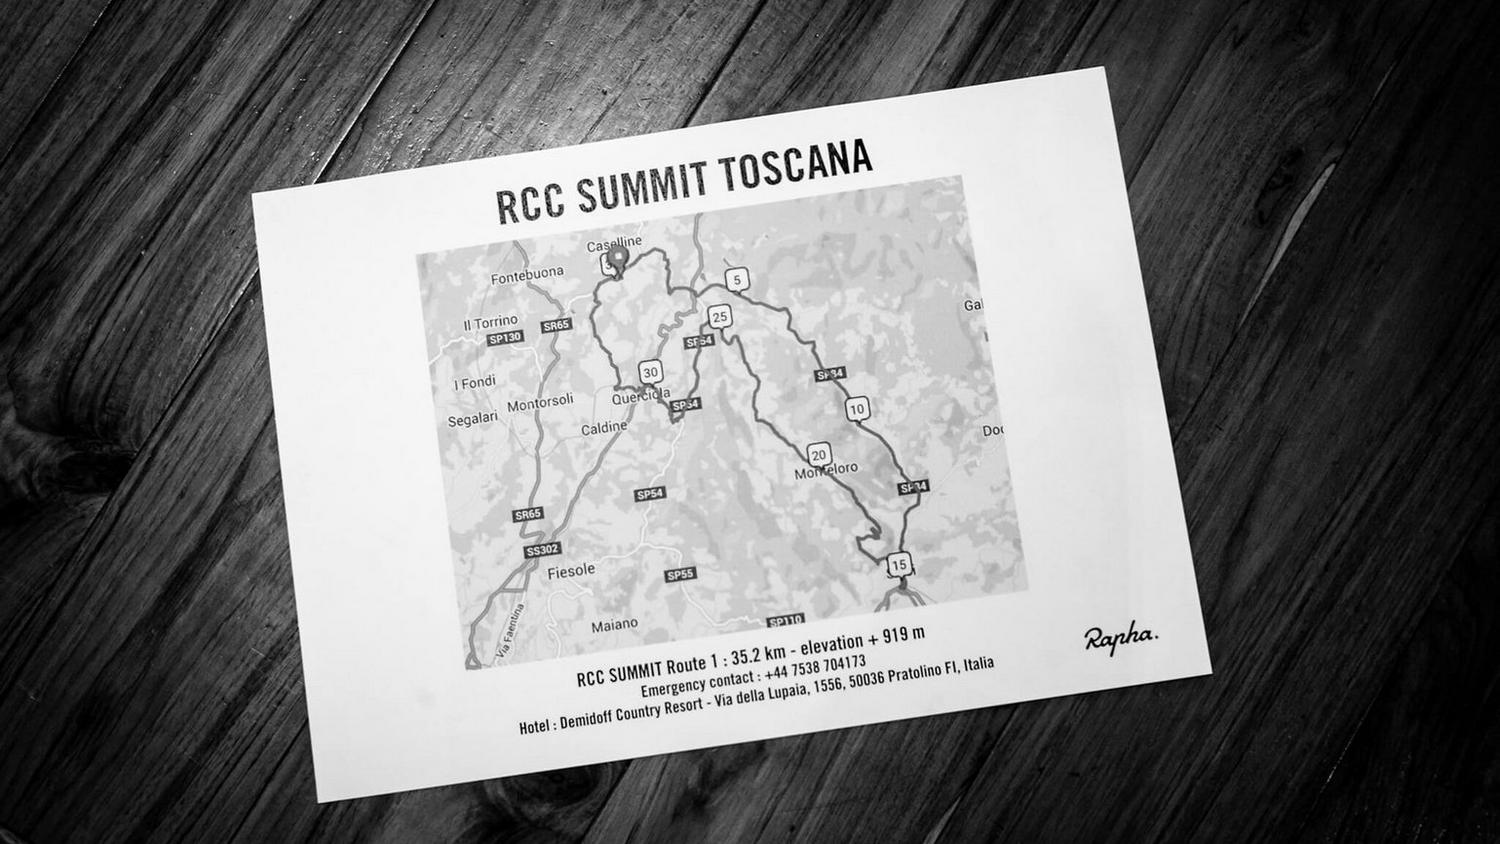 RCC Summit Tuscany